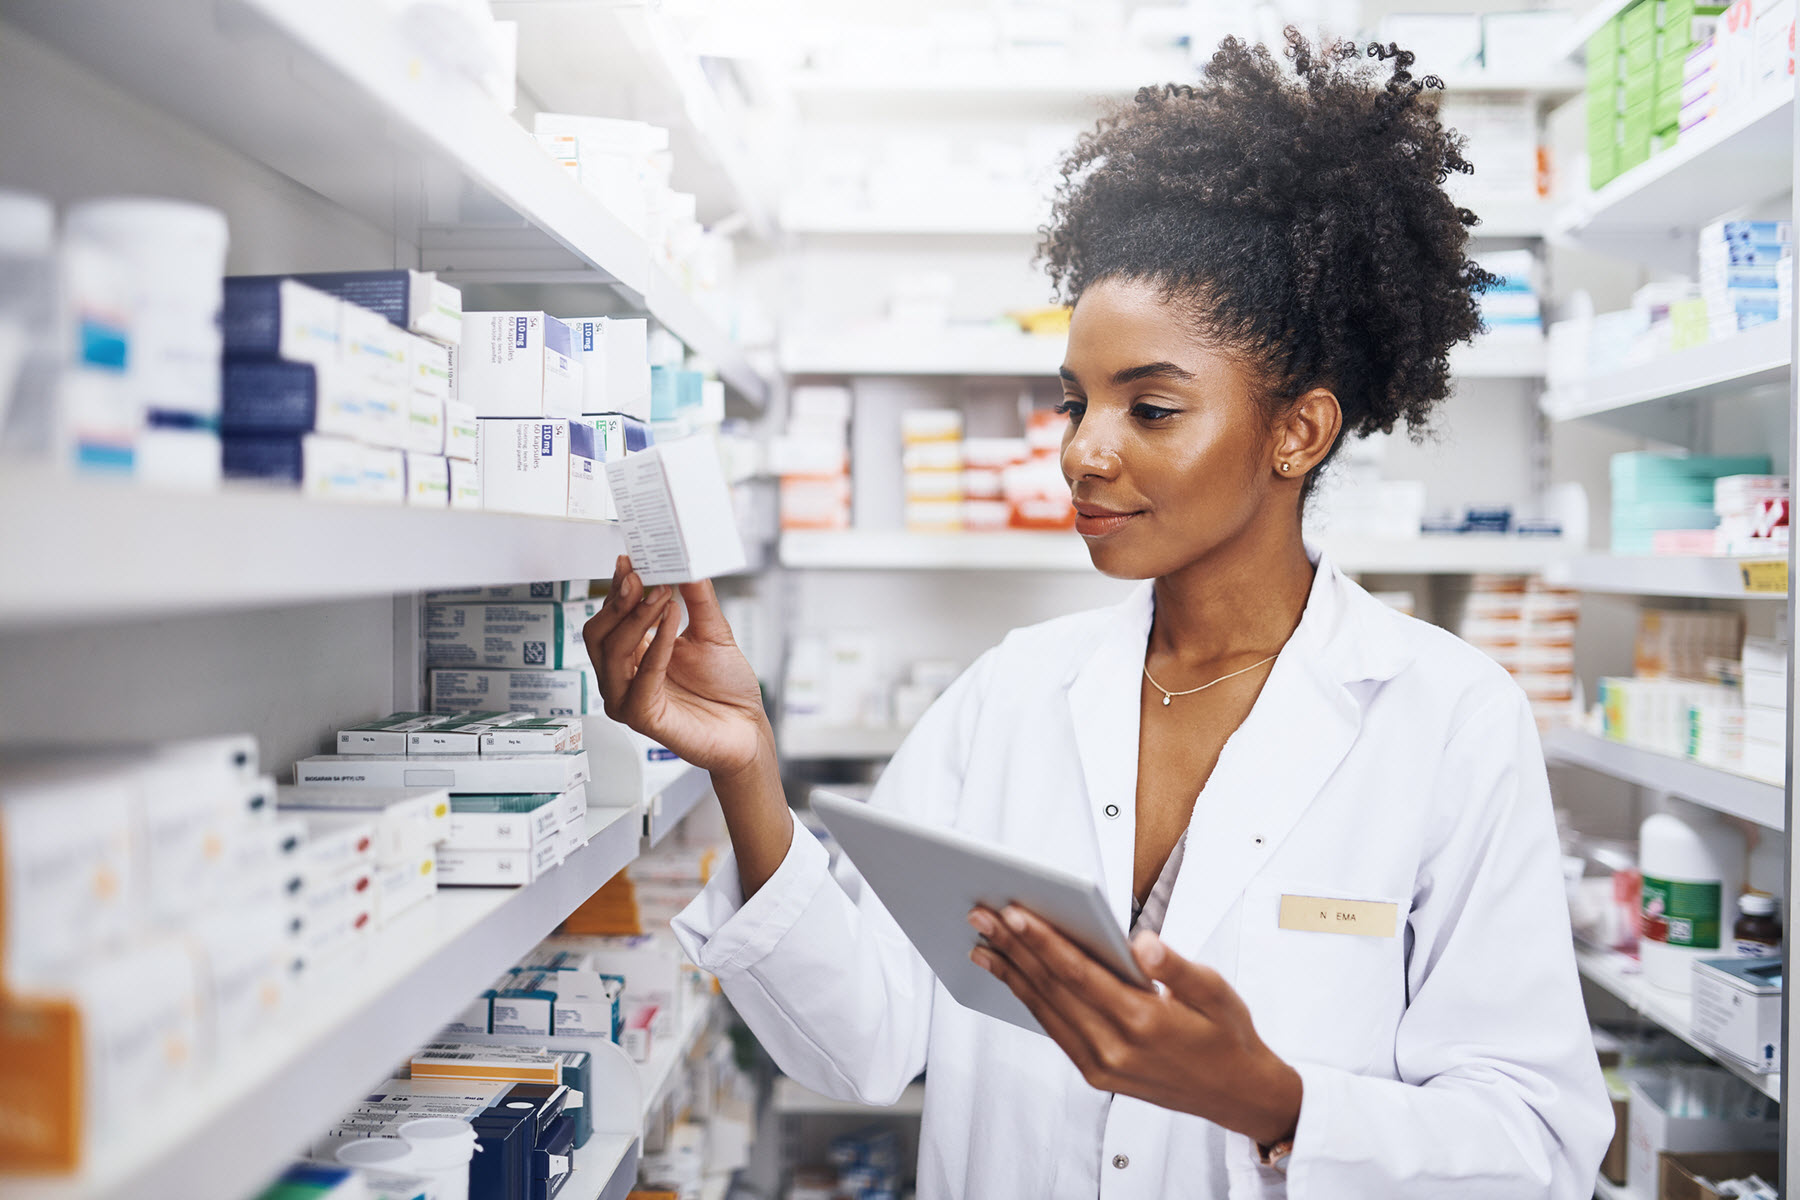 Tap opportunities in your midst to employ others, pharmacists told